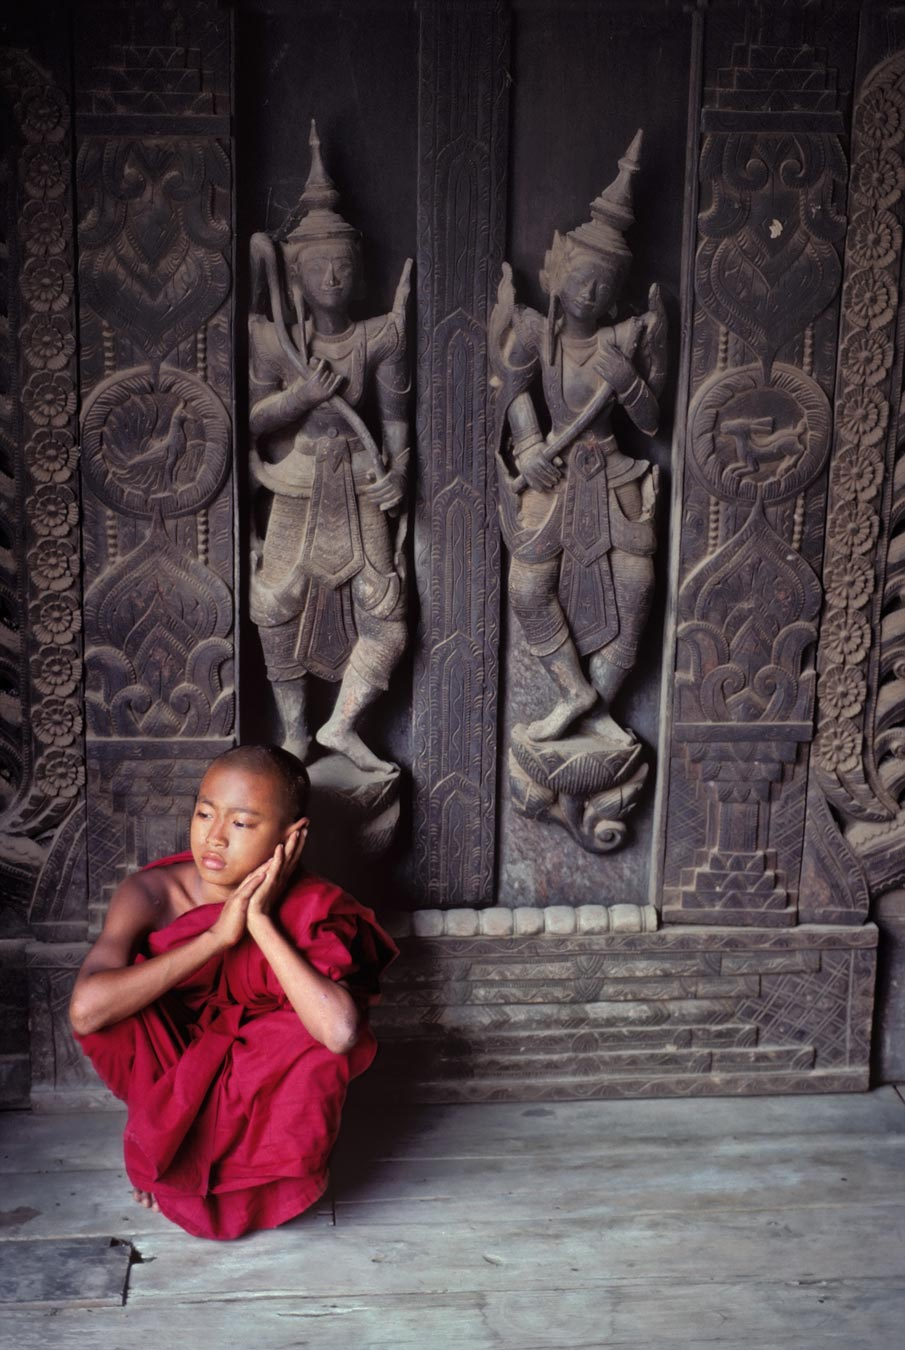 Burma-Steve-McCurry-wallpaper-wp3004016